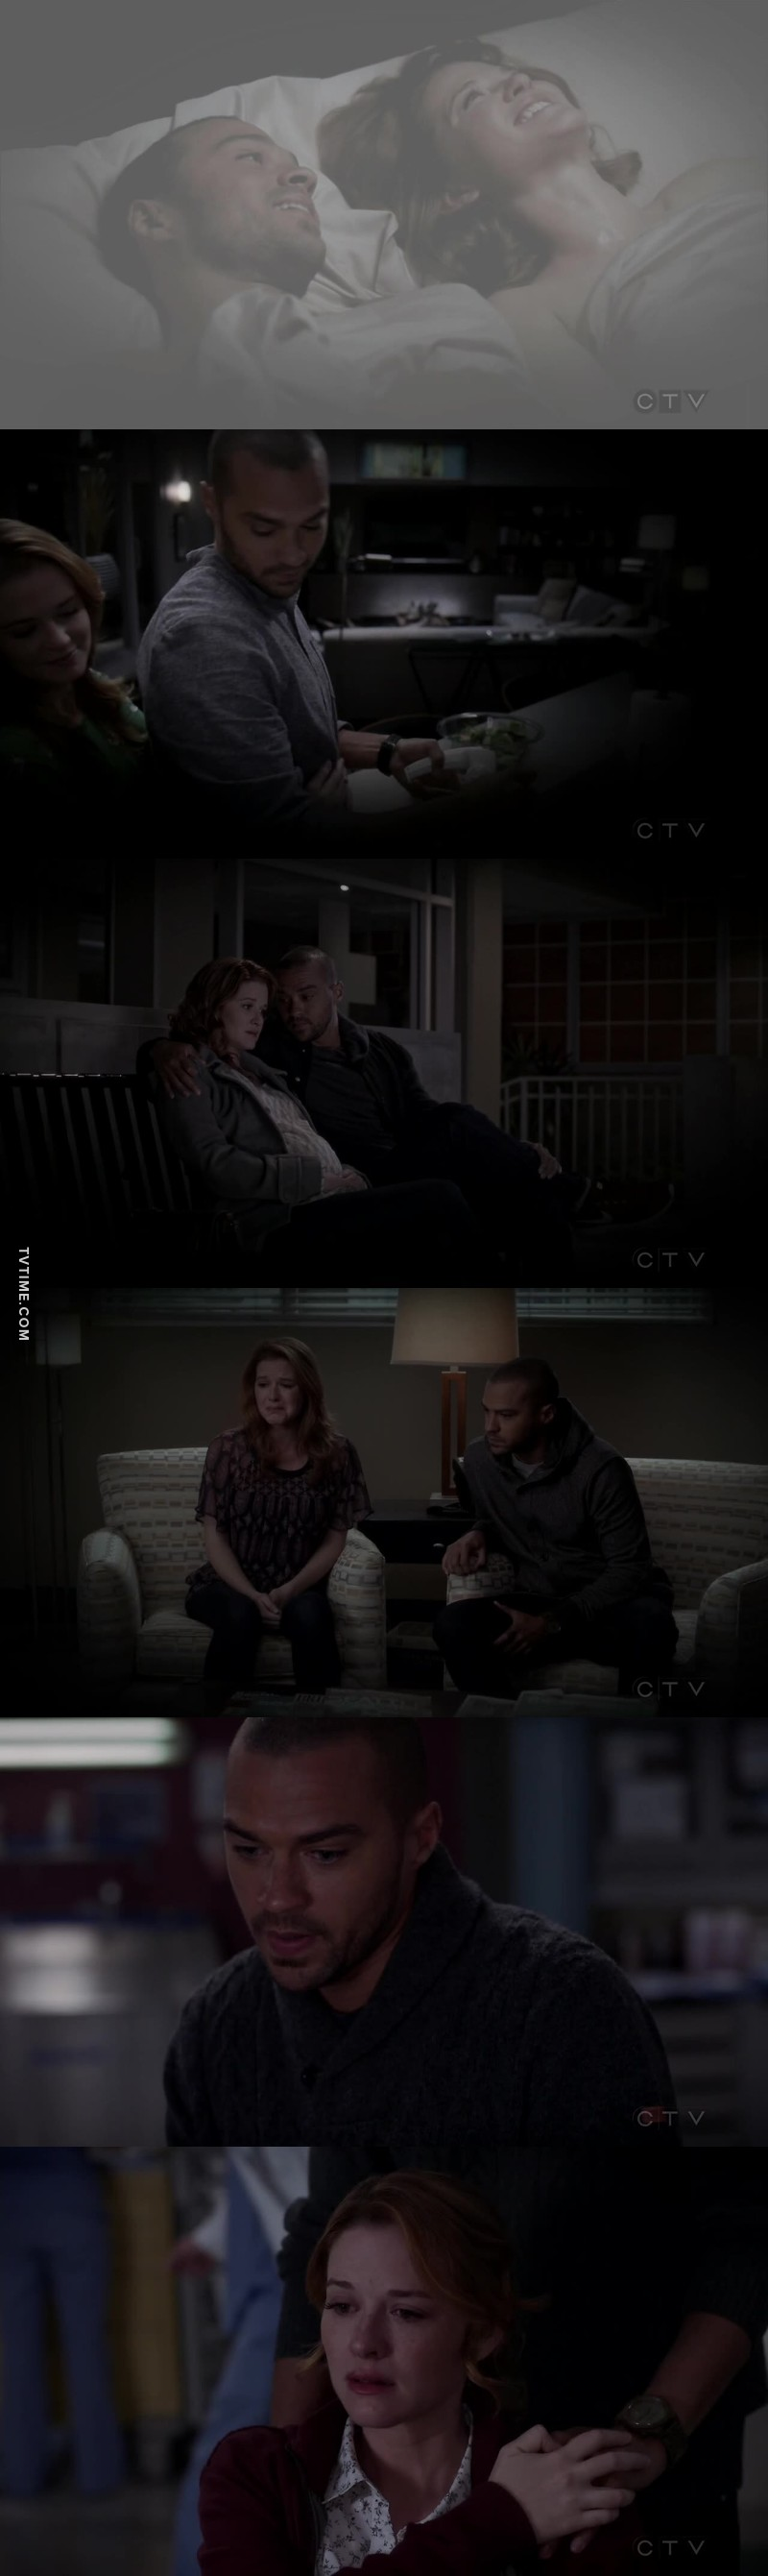 The Japril feels this episode just broke my heart... 💔